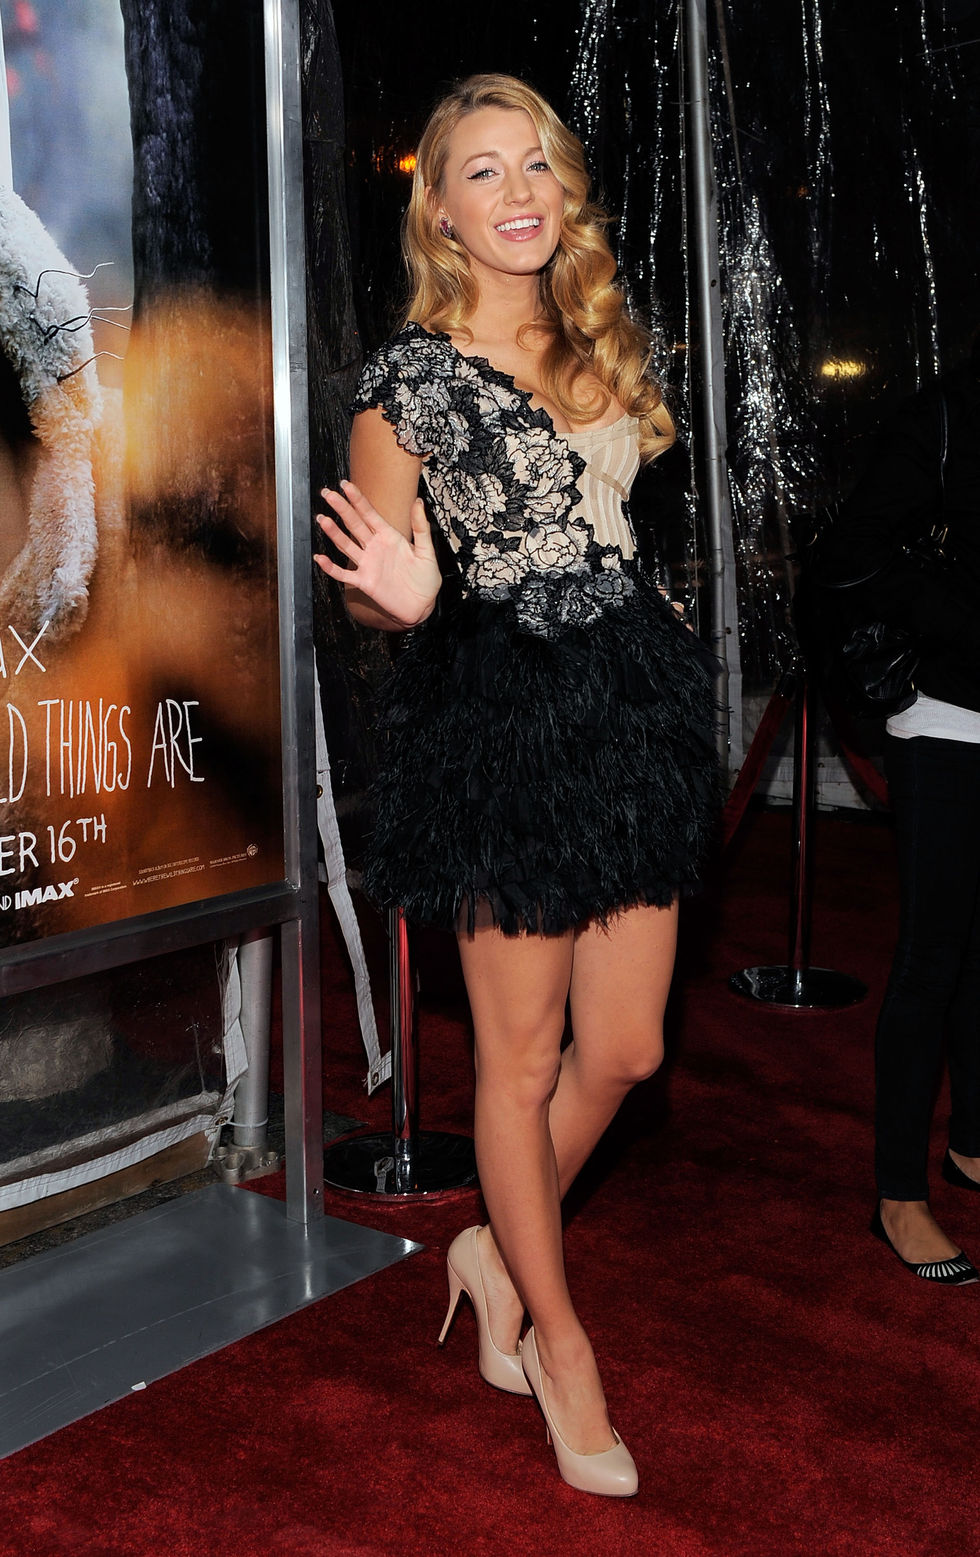 blake-lively-shows-cleavage-at-where-the-wild-things-are-premiere-01